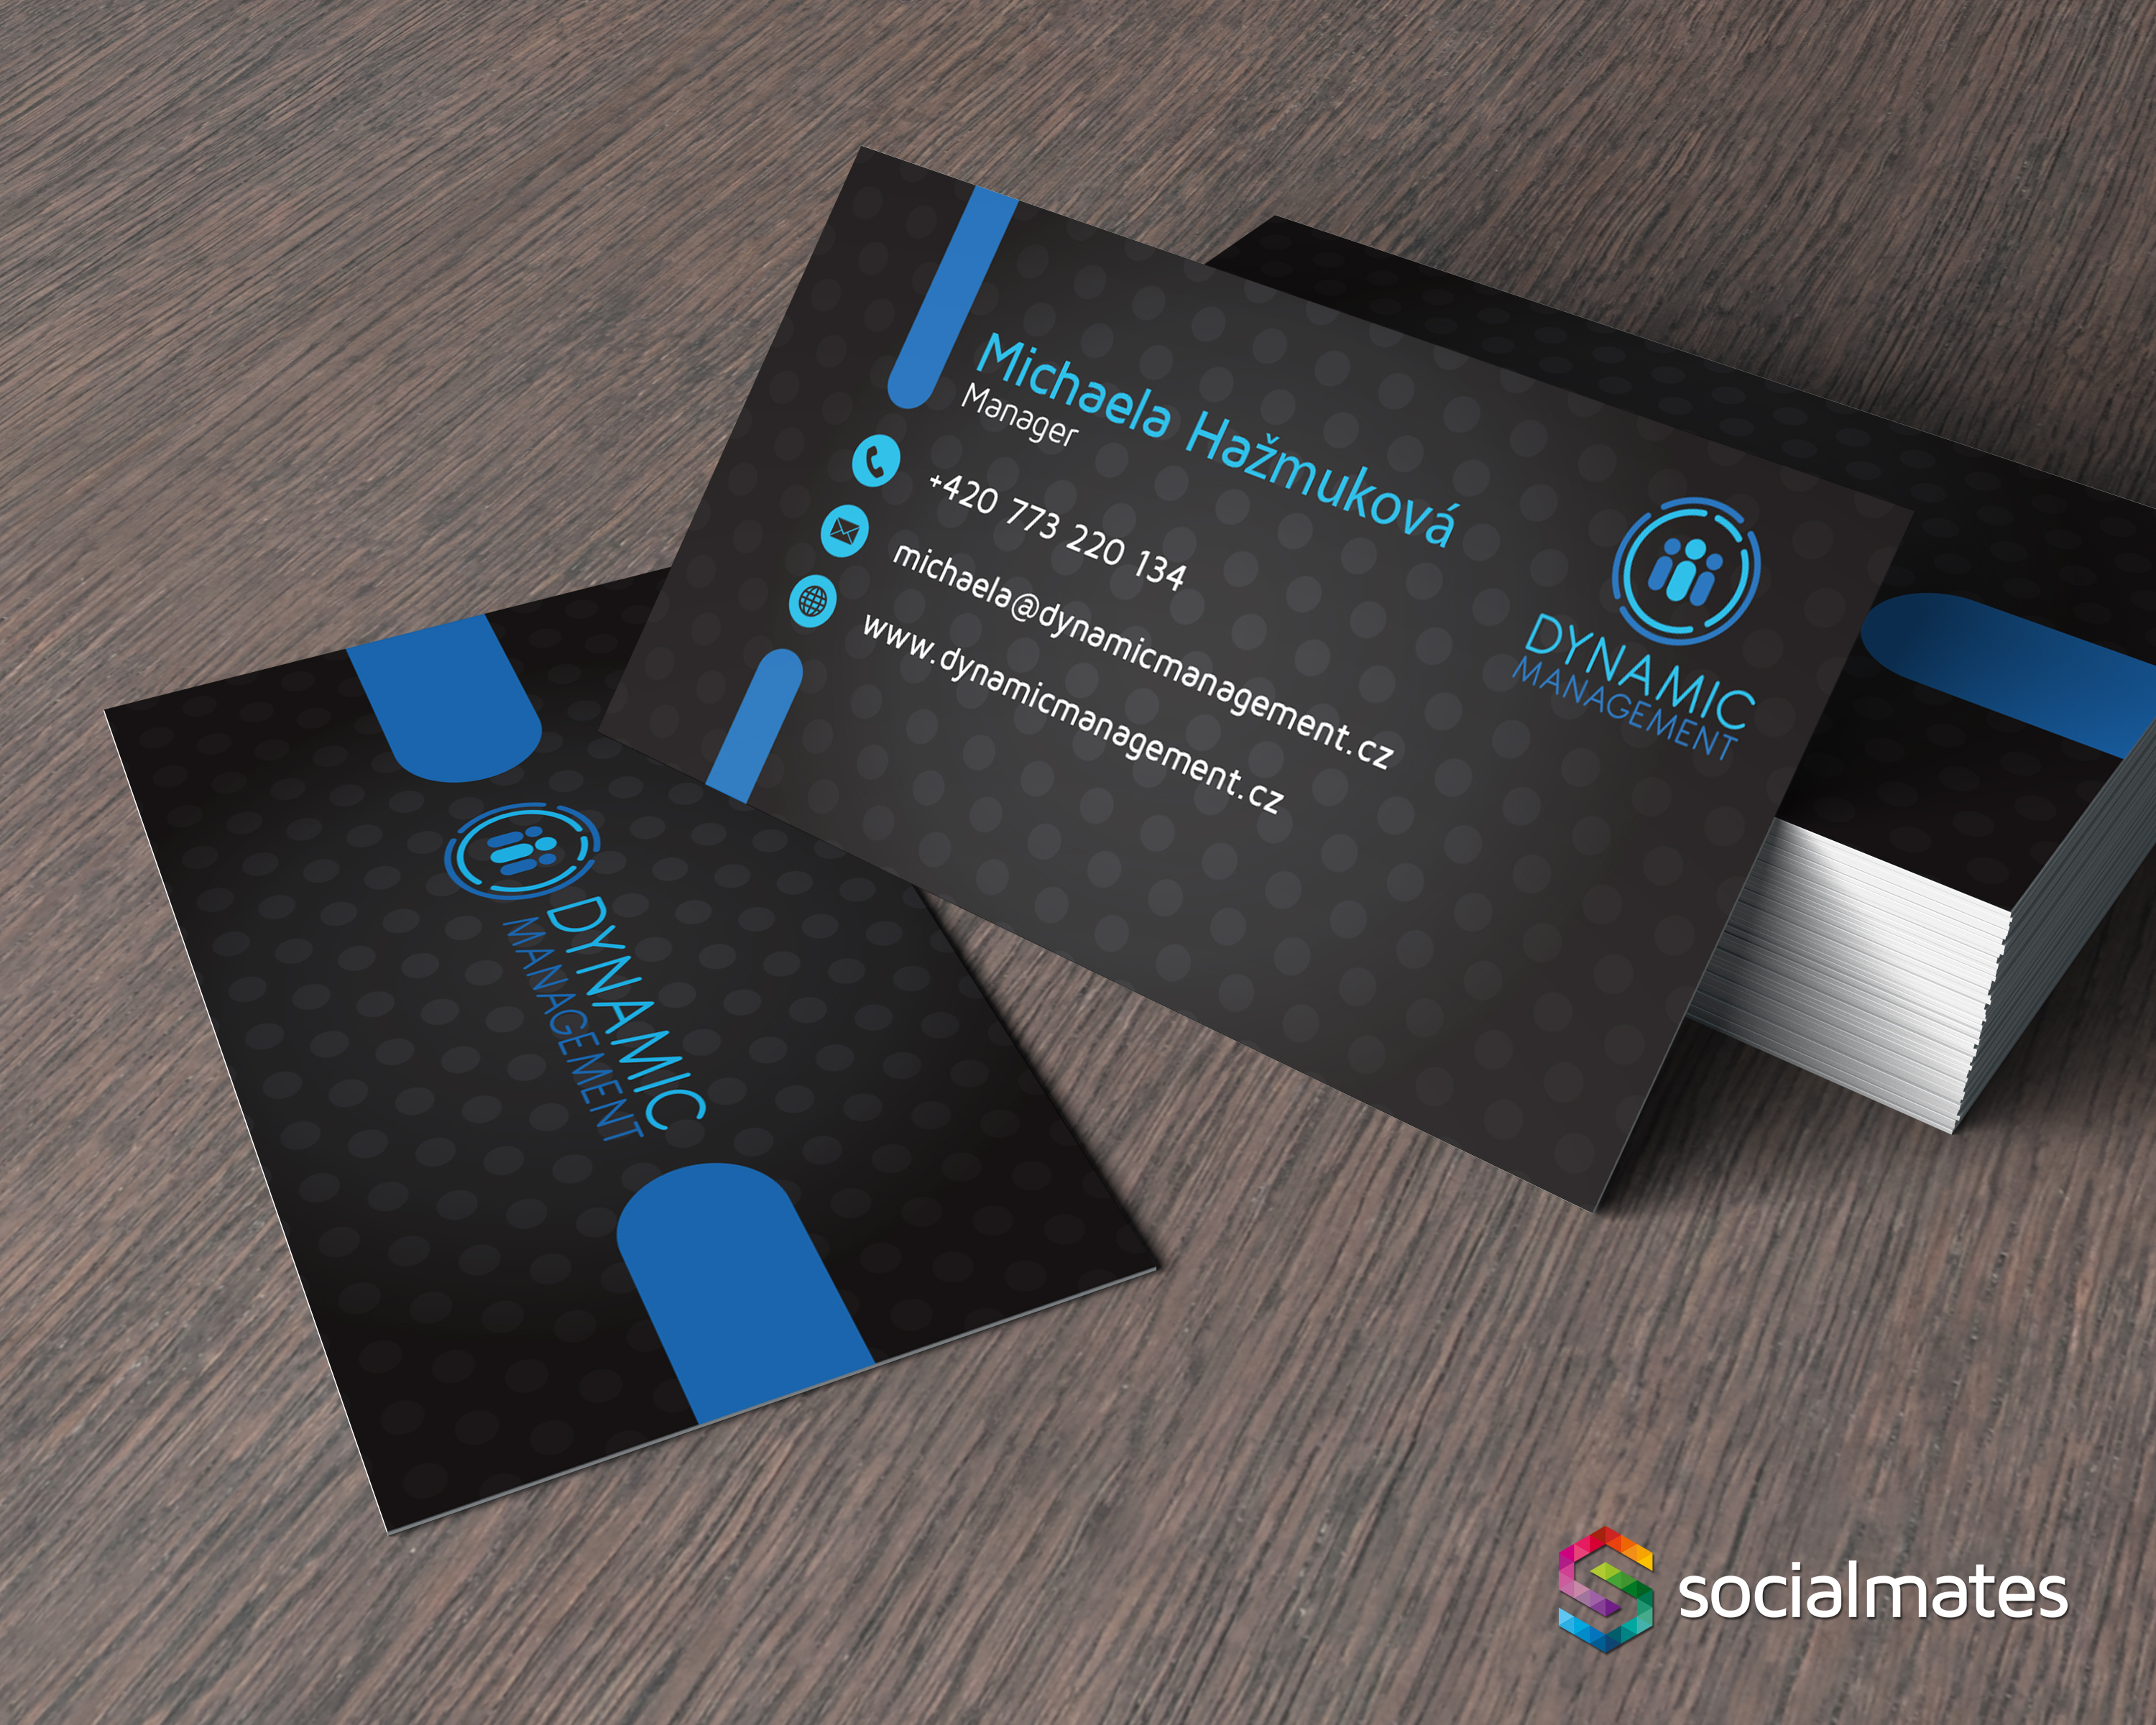 Dynamic Management Business Cards | Socialmates